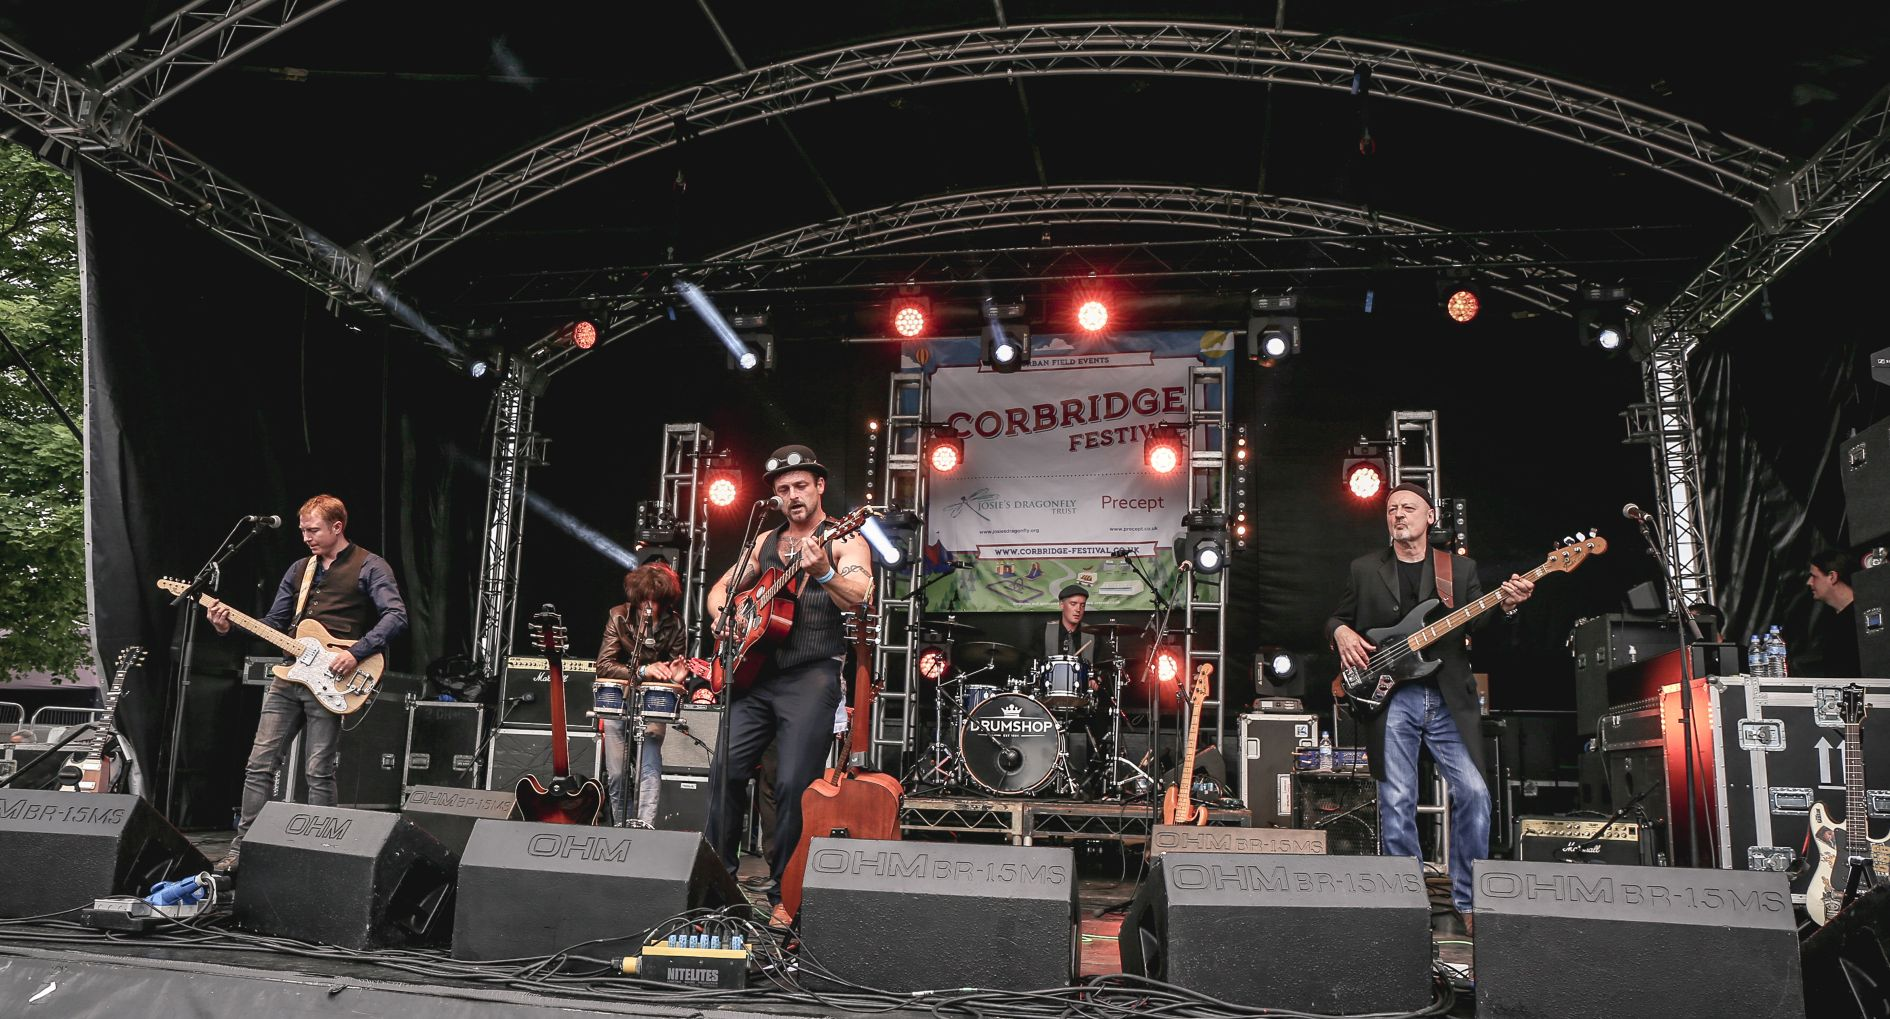 Live music at Corbridge Festival